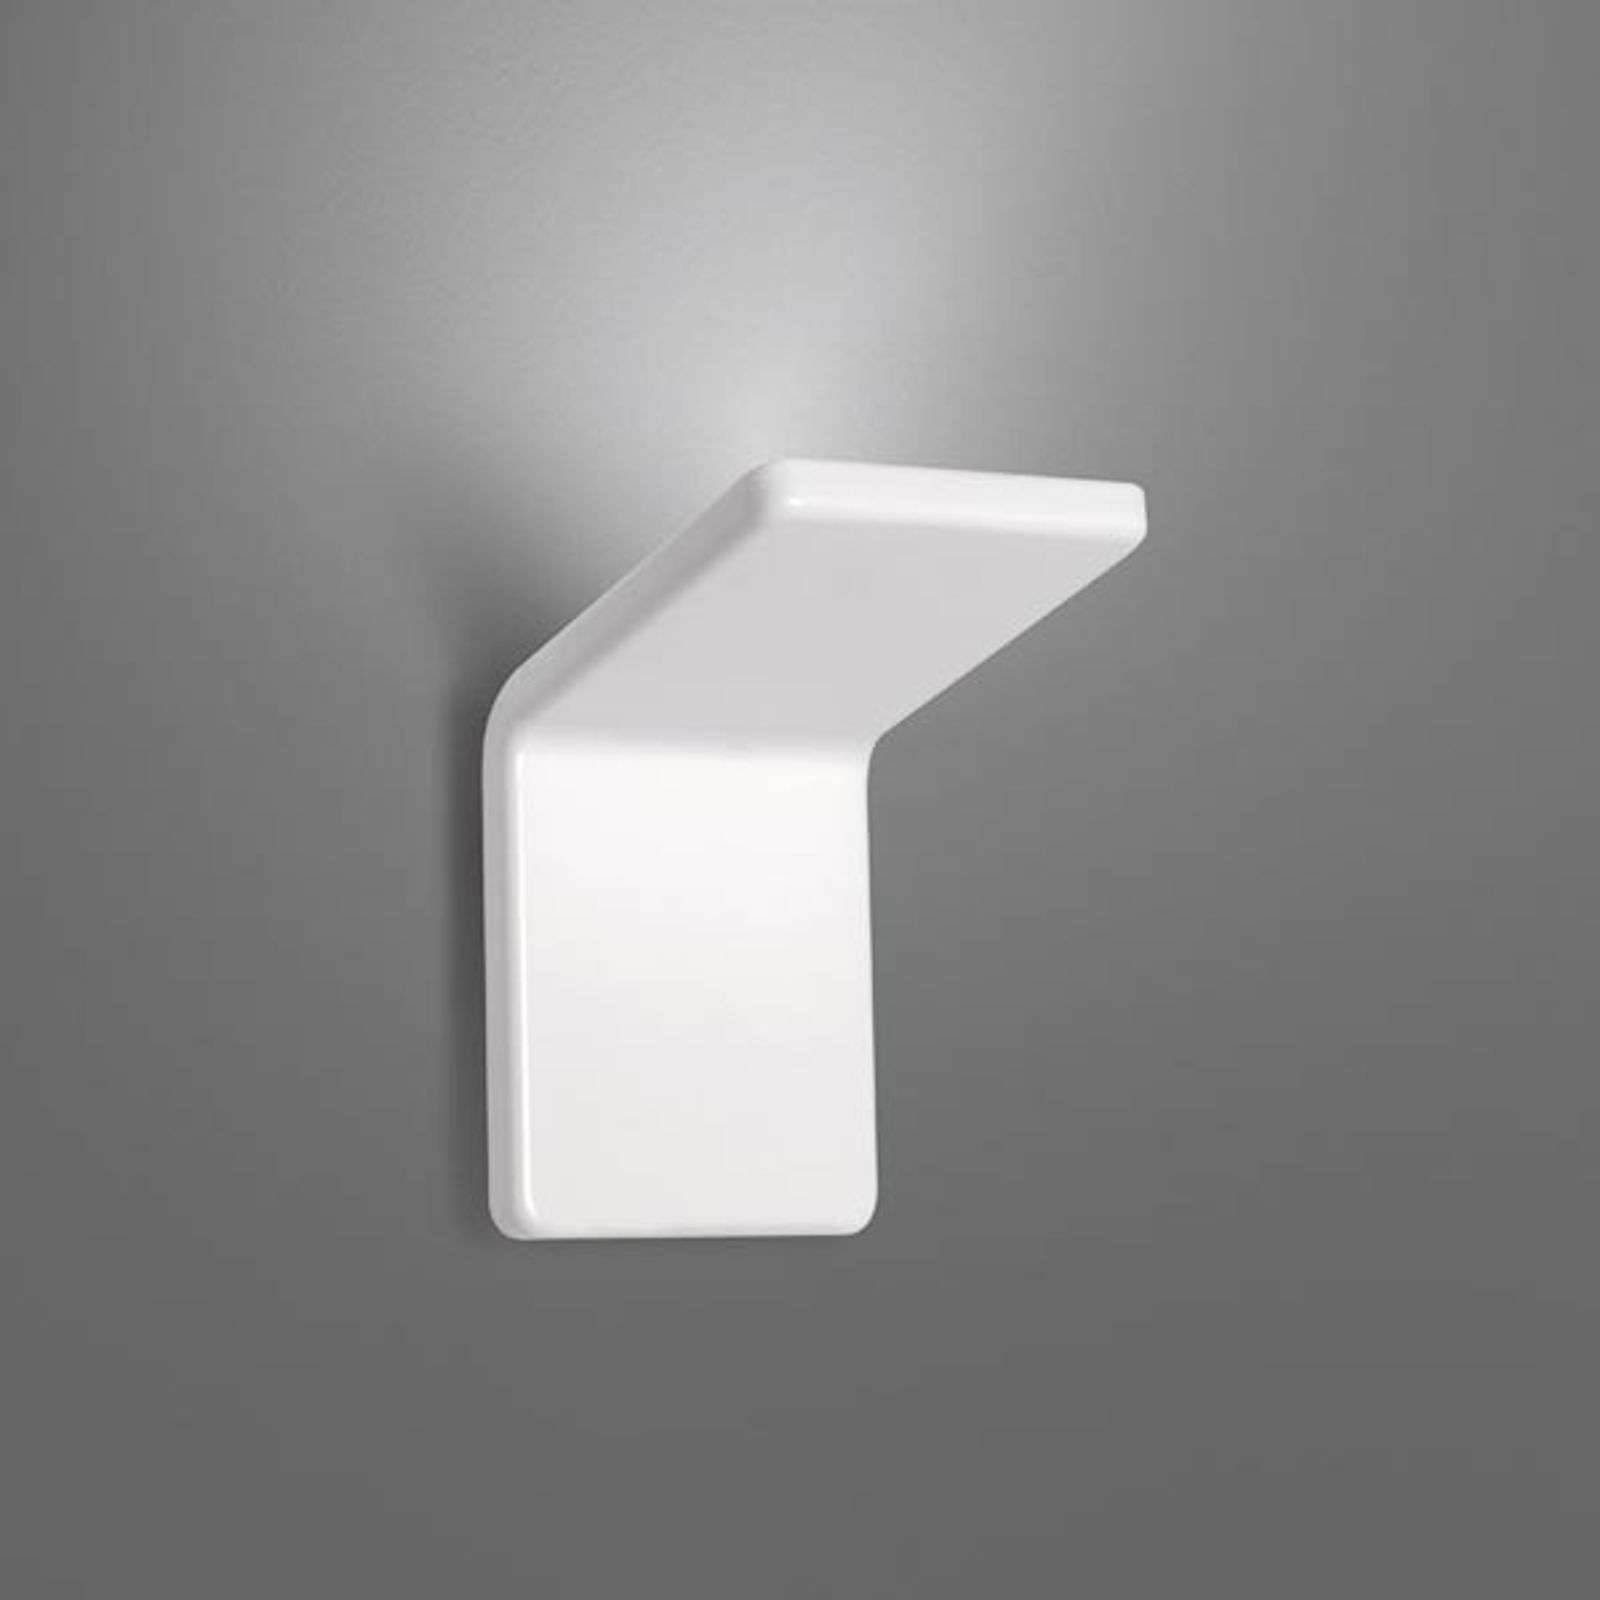 LED design wandlamp Cuma 10 in wit